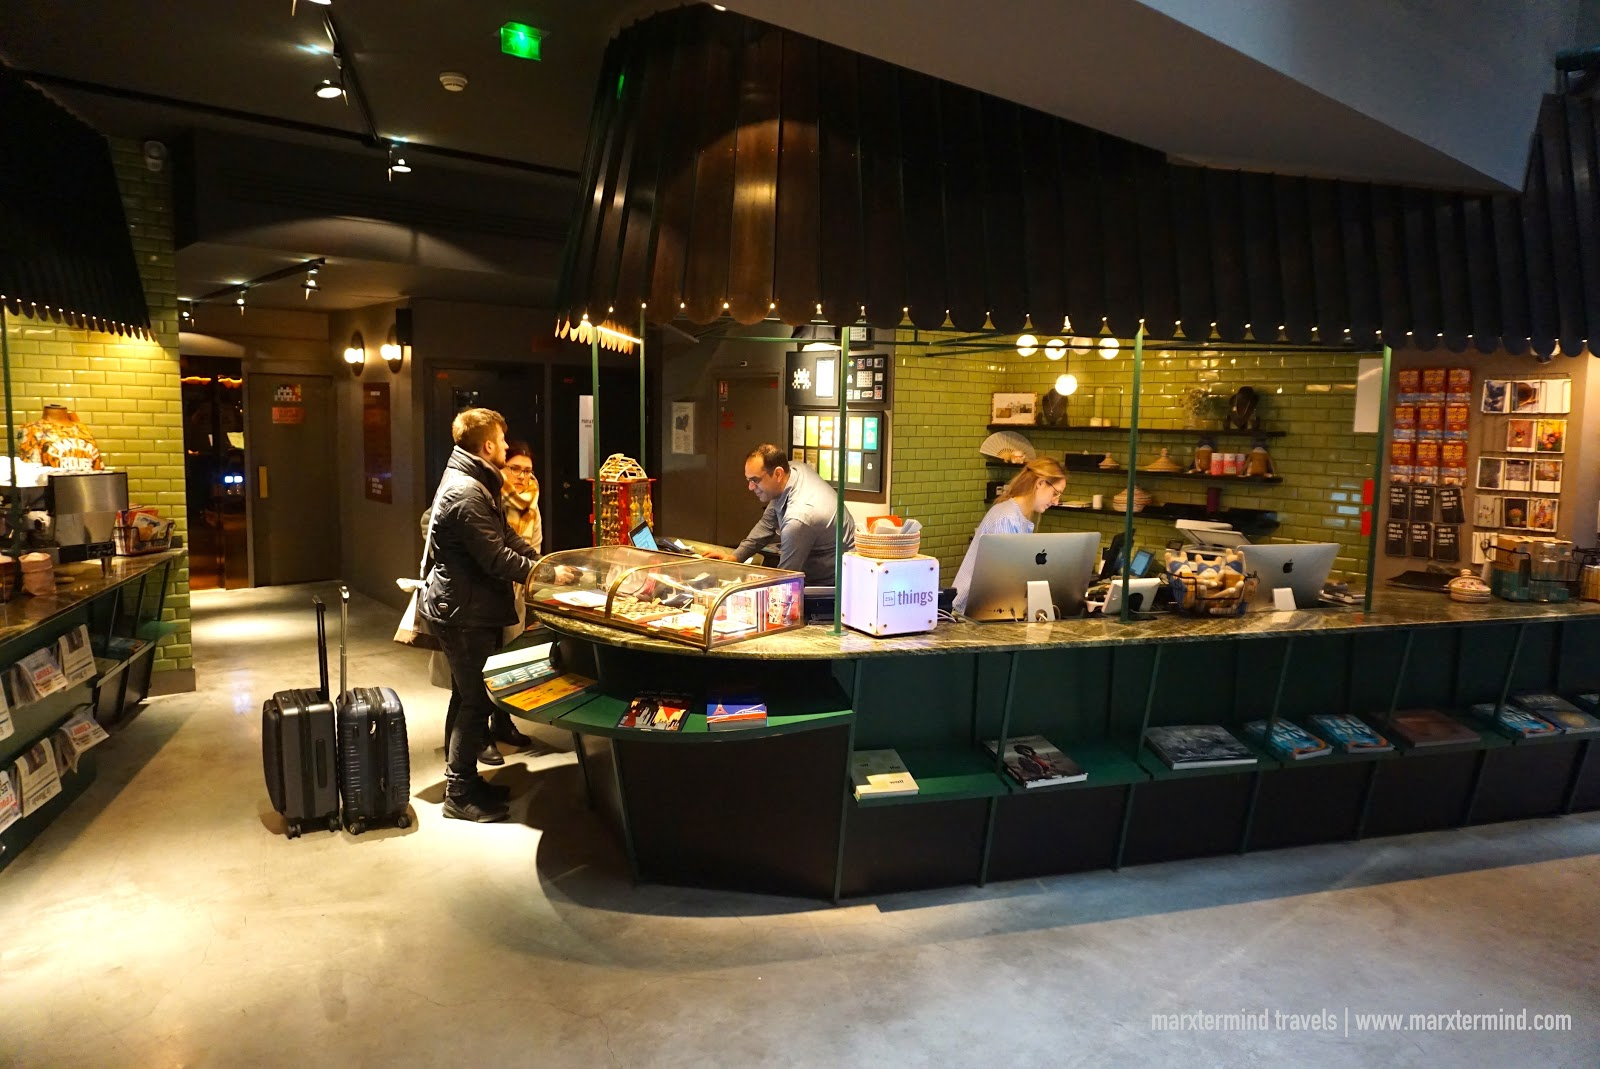 Reception Area of 25hours Hotel Terminus Nord